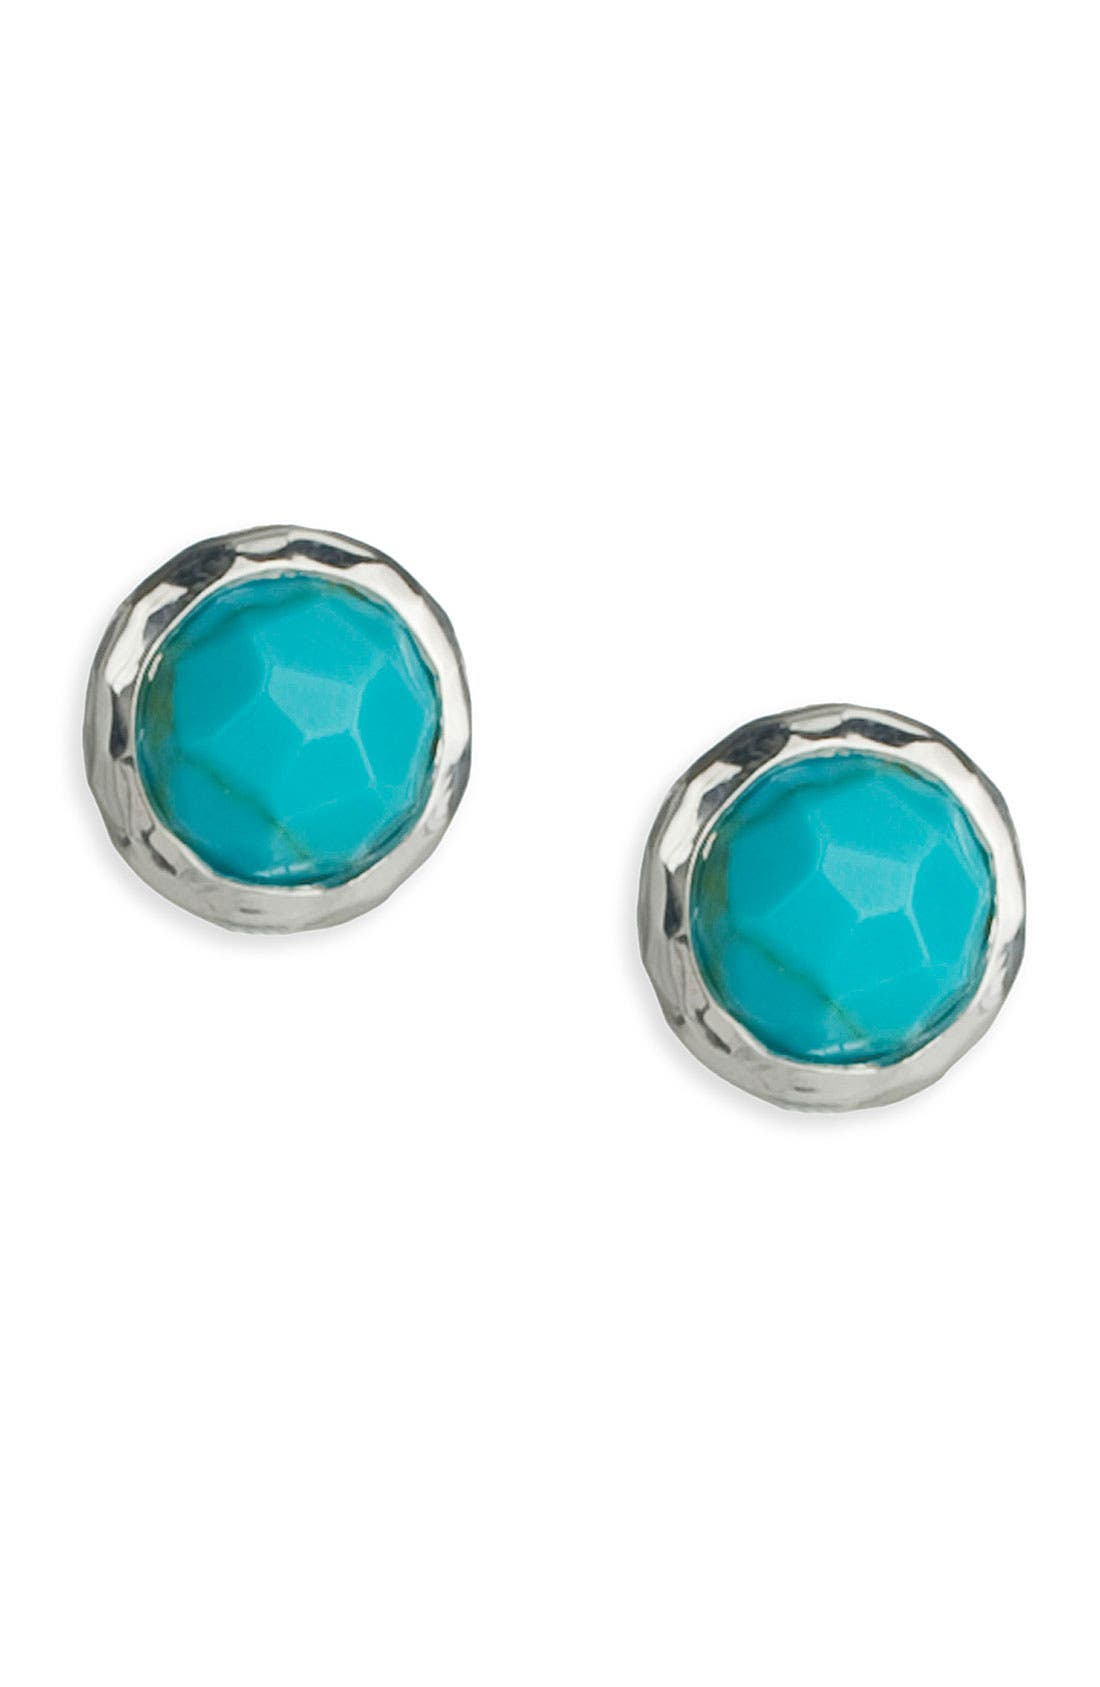 Main Image - Ippolita 'Rock Candy' Semiprecious Stud Earrings